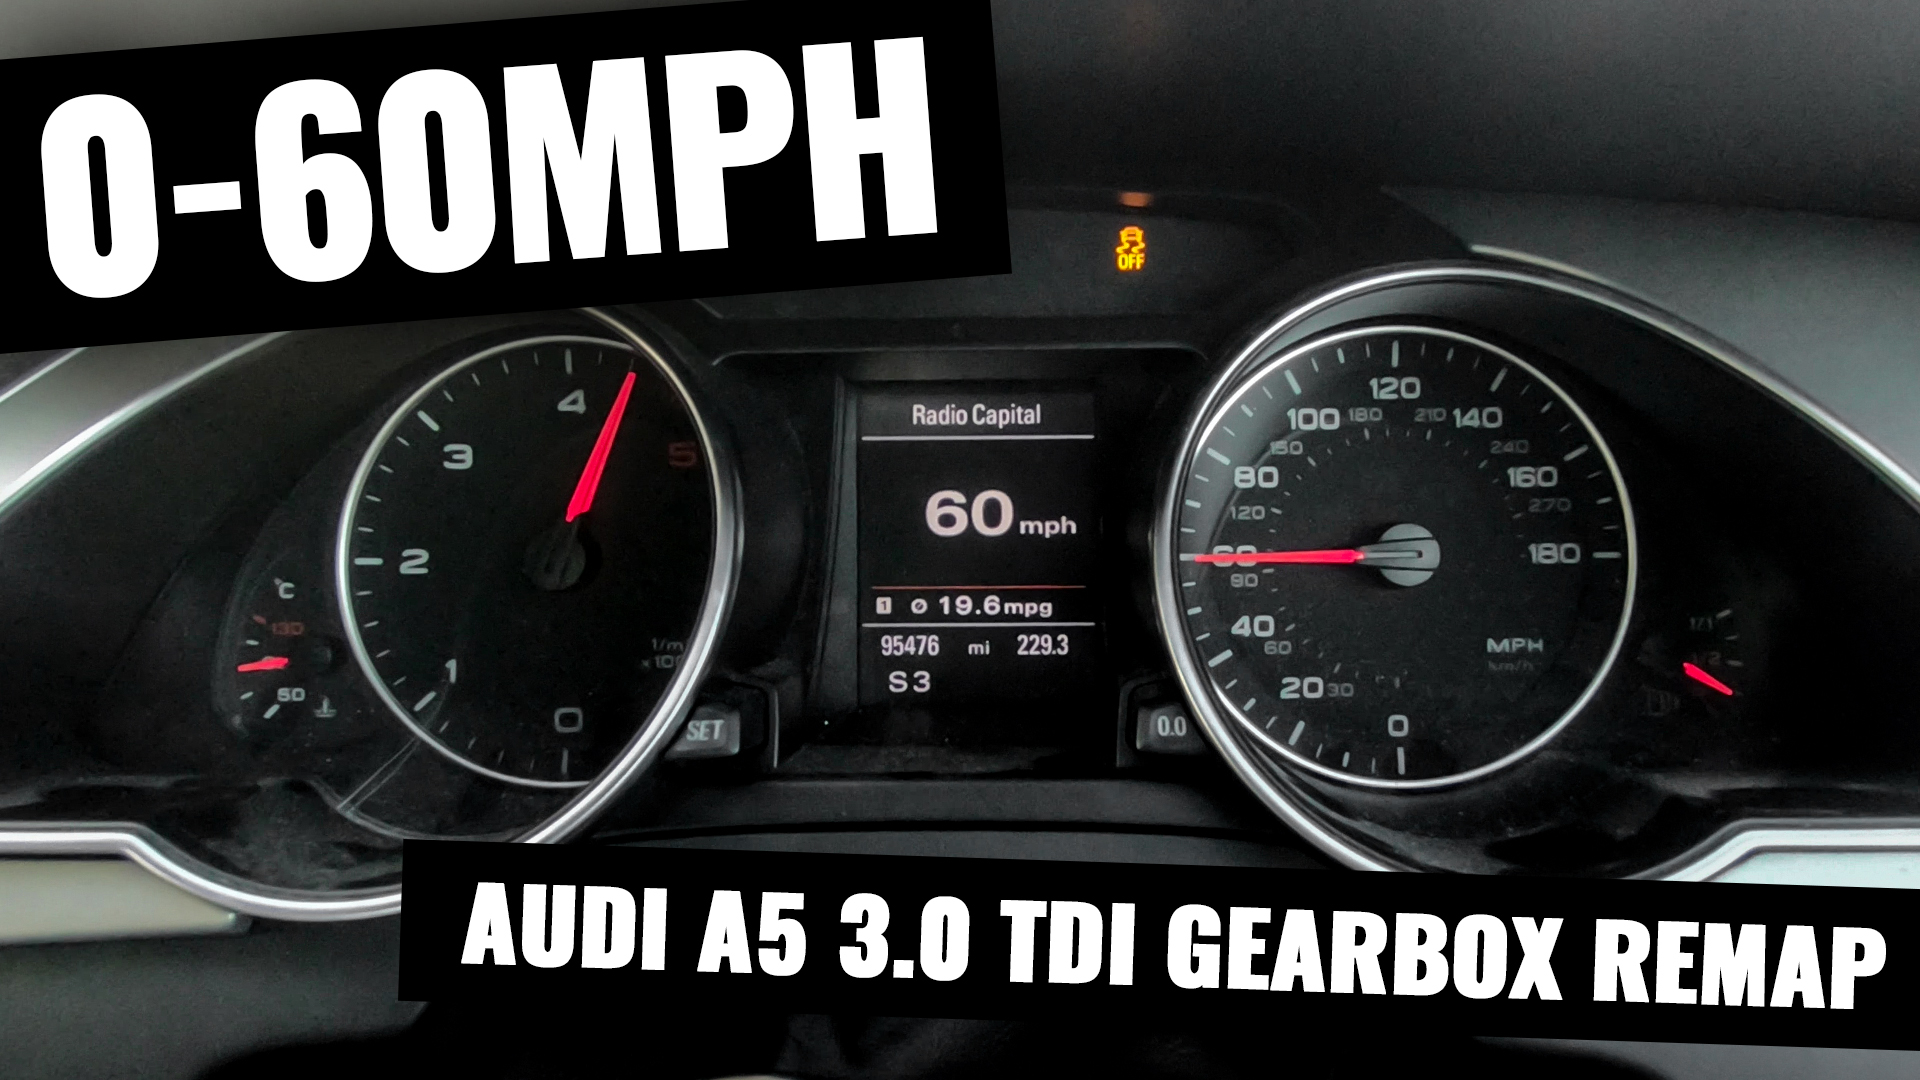 0-60MPH AFTER GEARBOX REMAP - AUDI A5 3 0 TDI QUATTRO